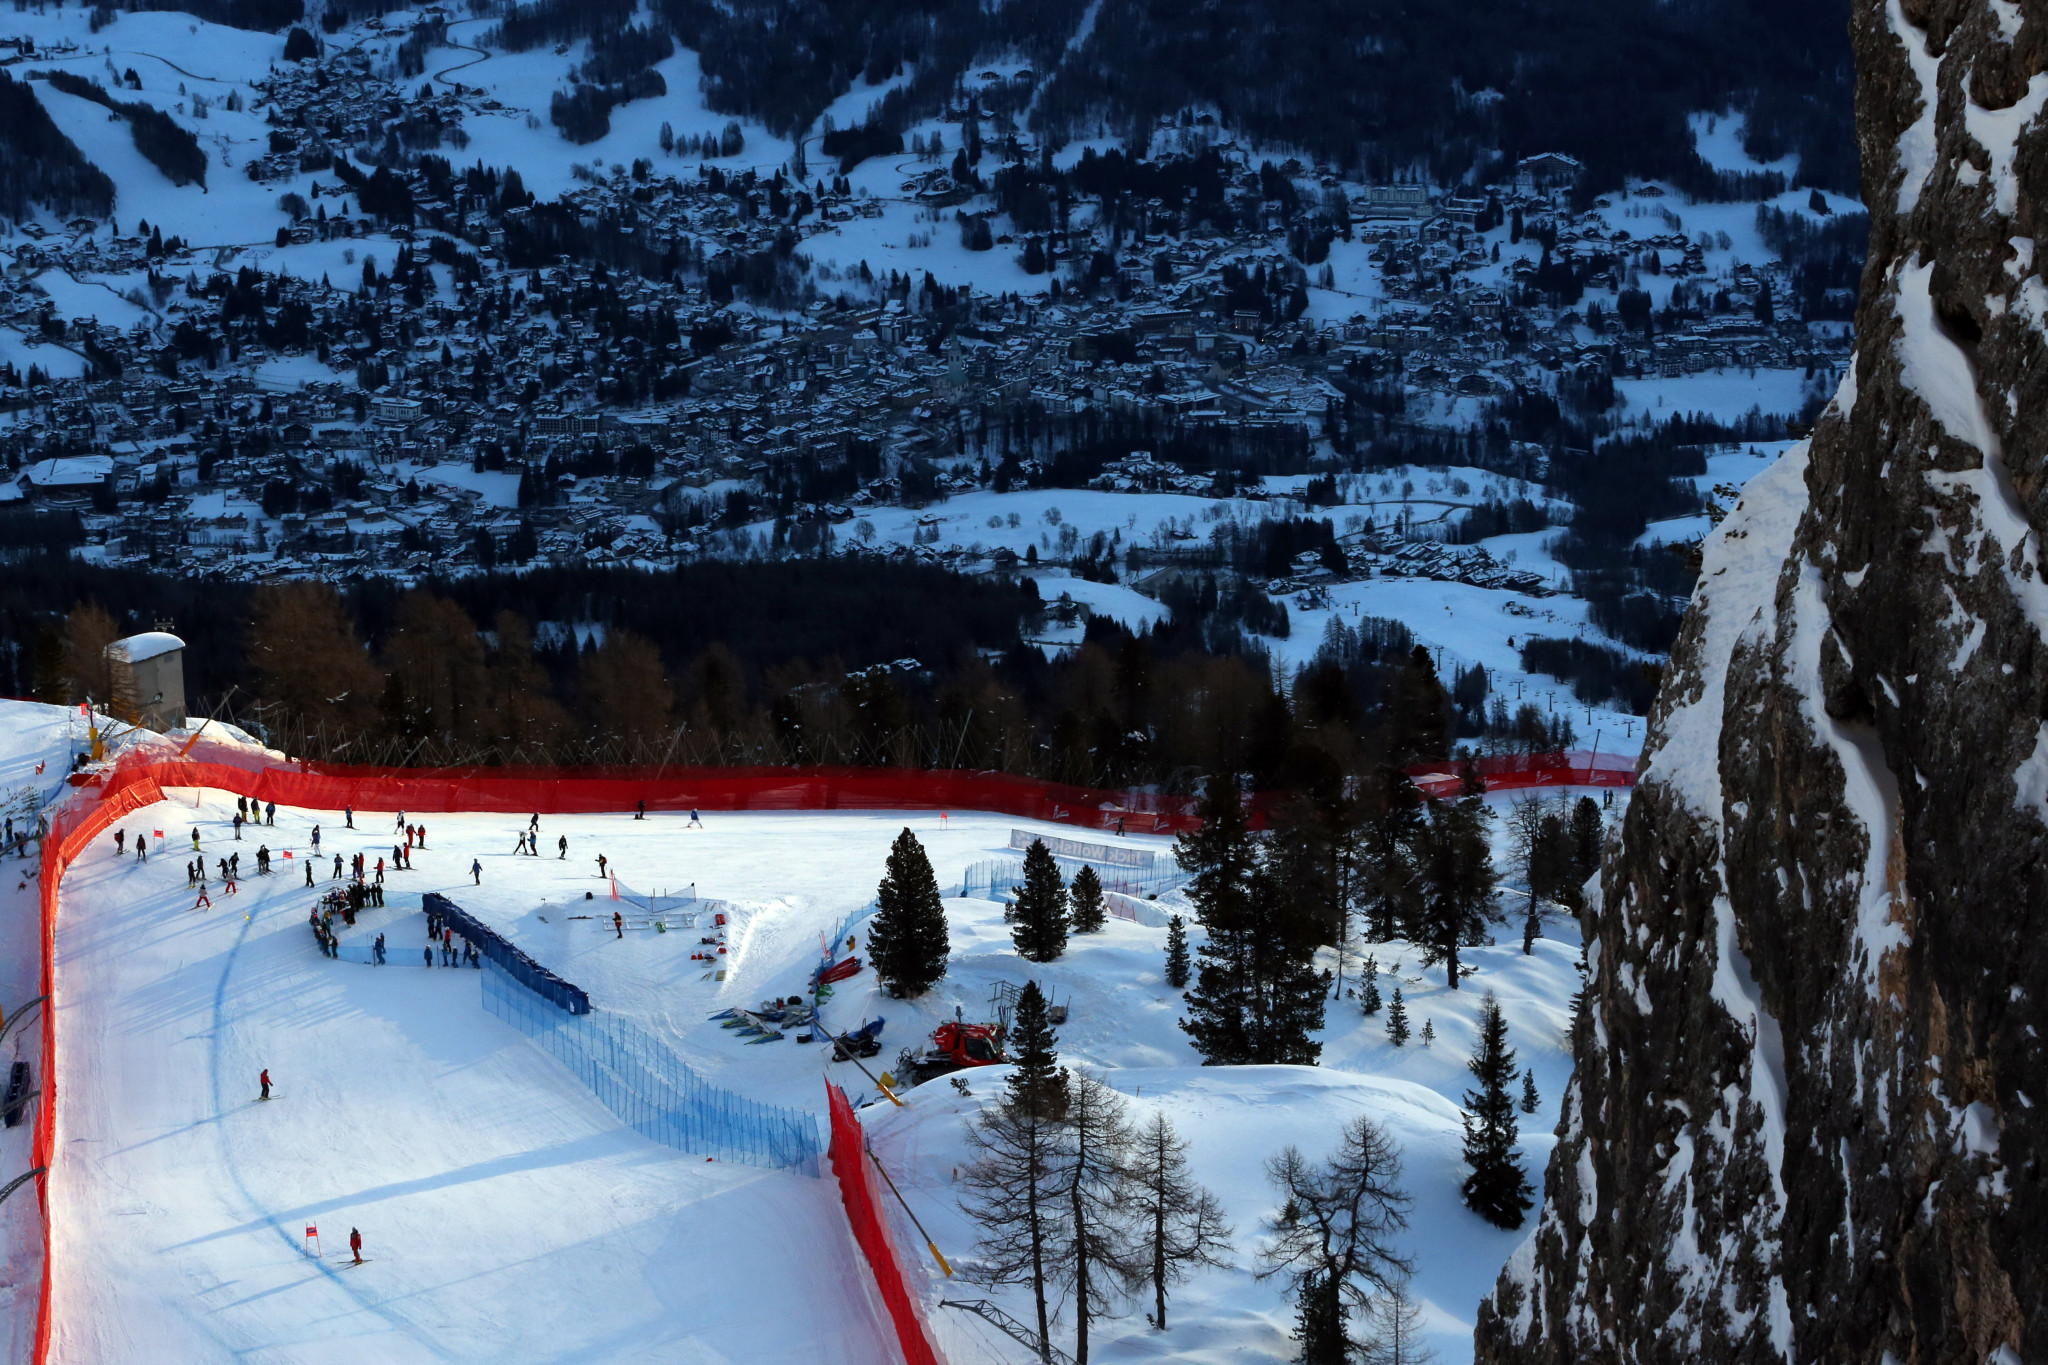 The FIS visit was the first since Milan-Cortina d'Ampezzo was awarded the 2026 Winter Olympics and Paralympics ©Getty Images